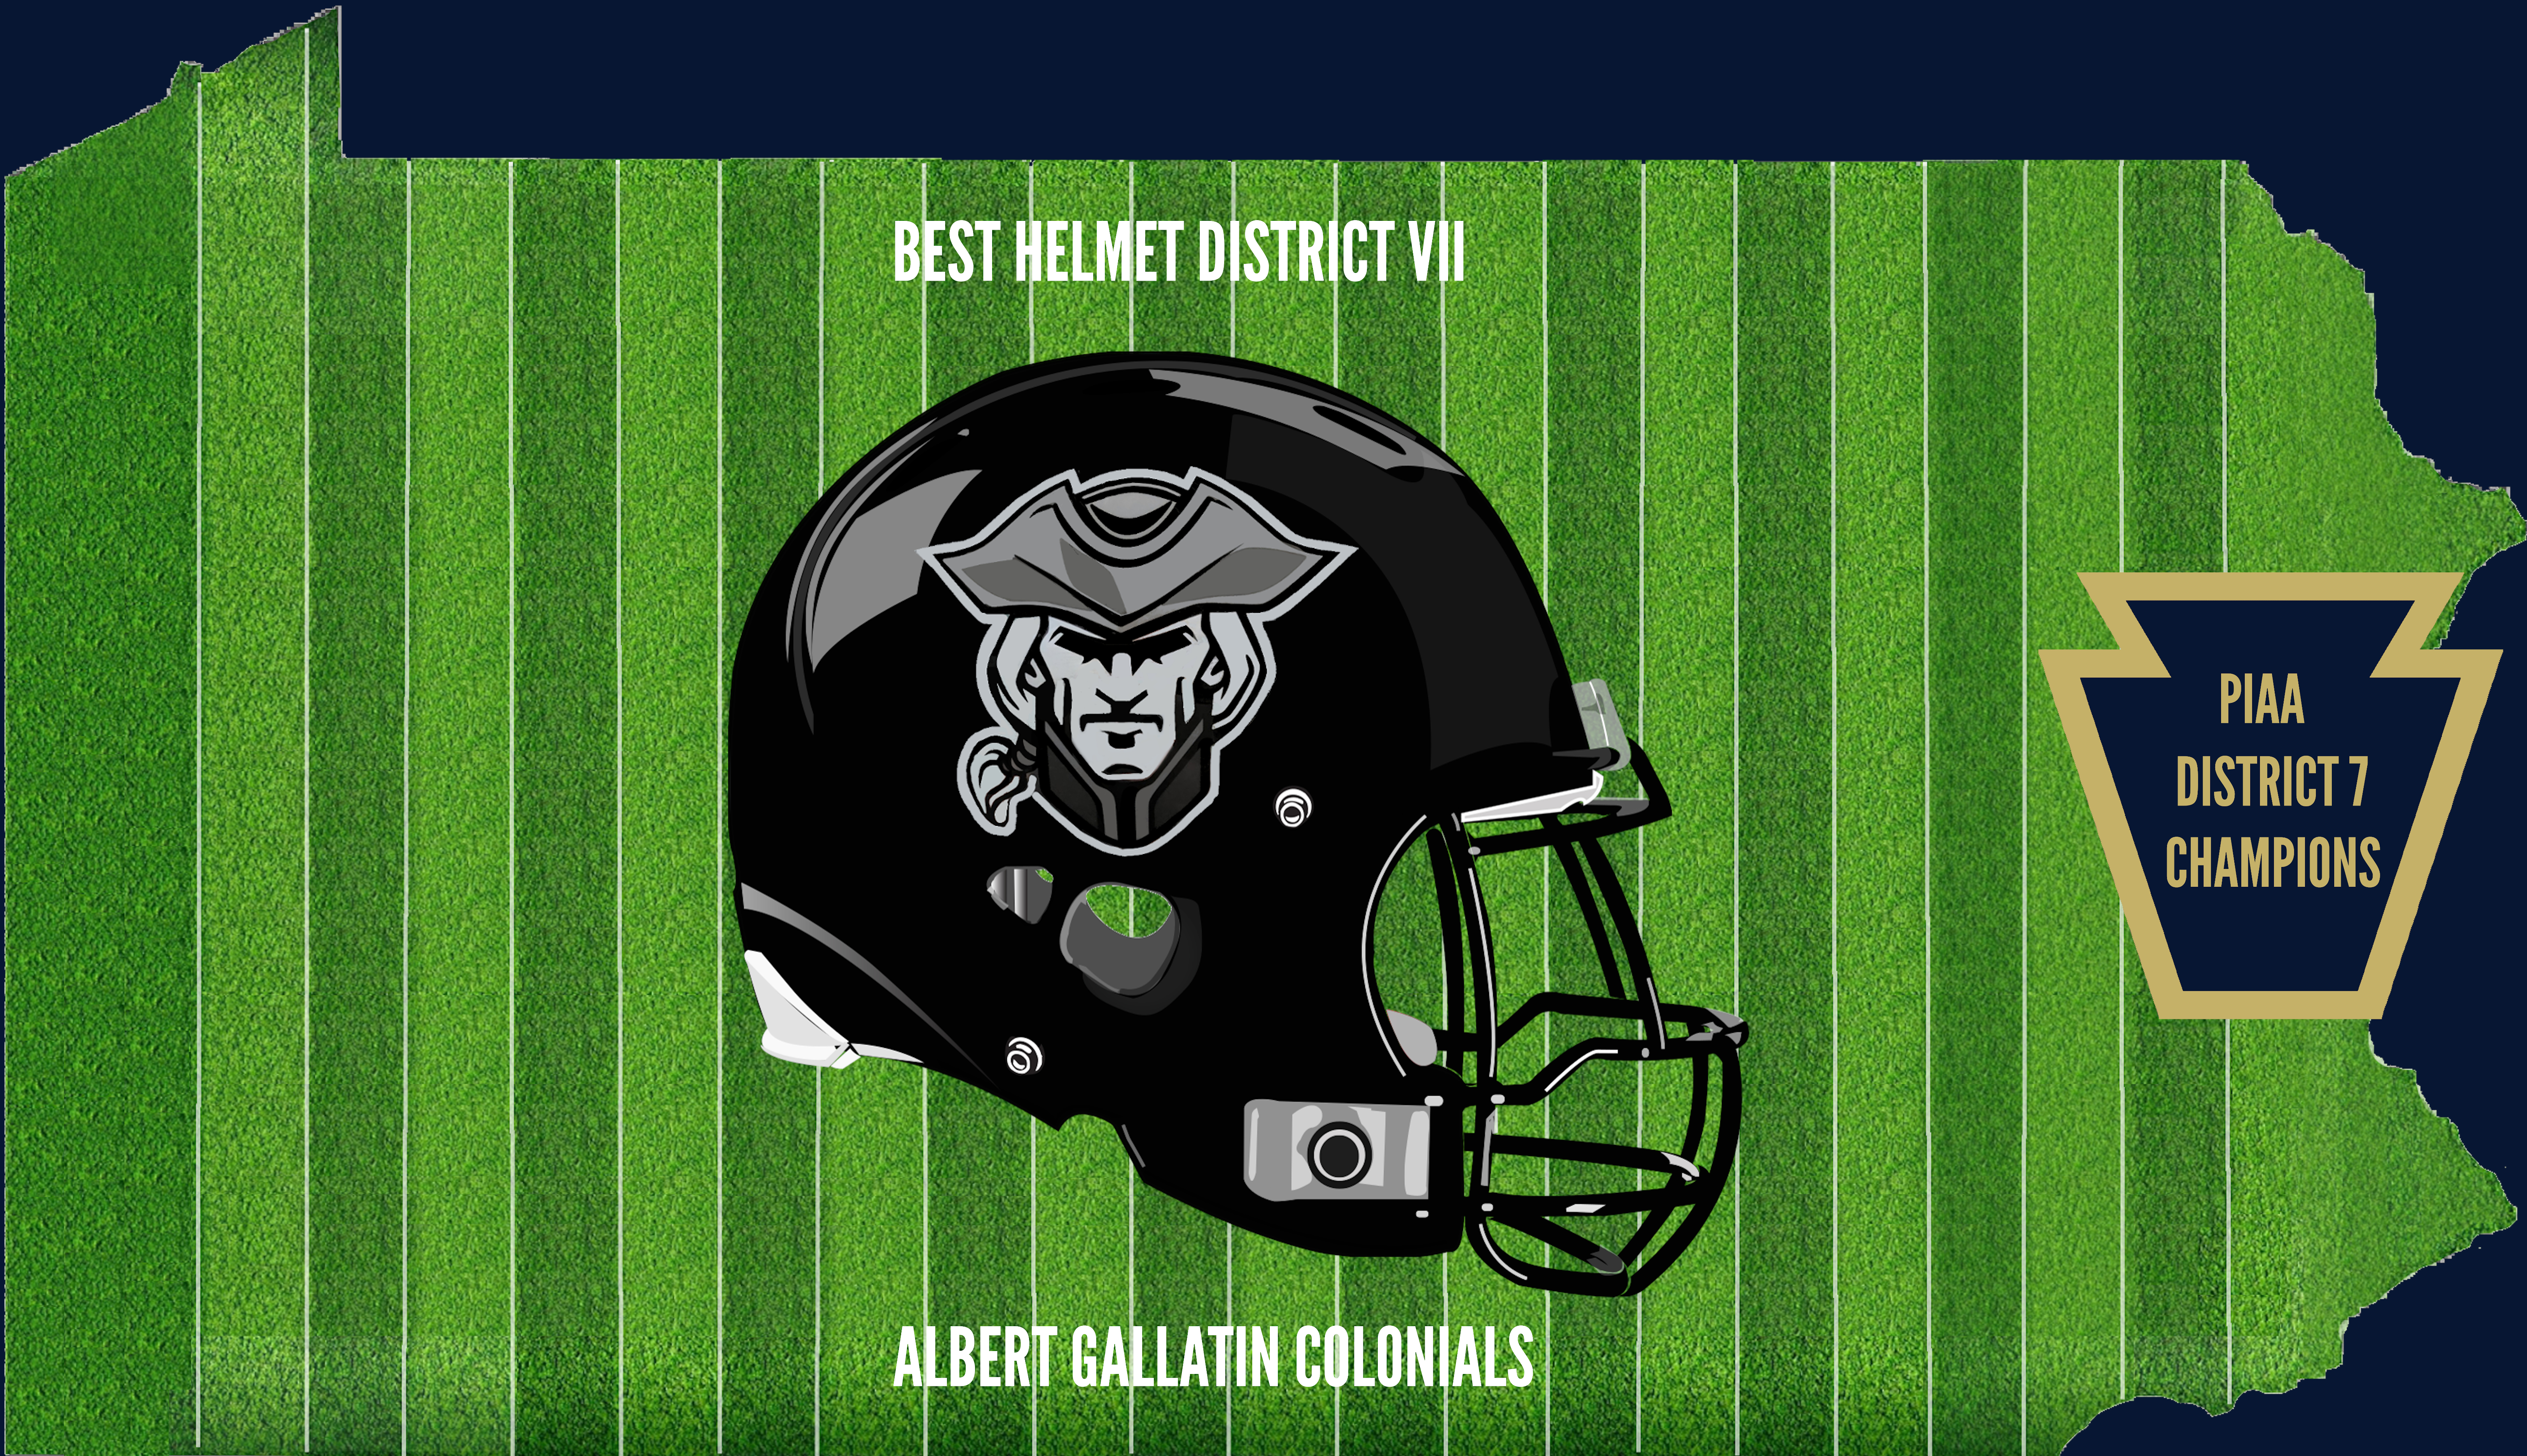 District 7 Champion Helmet